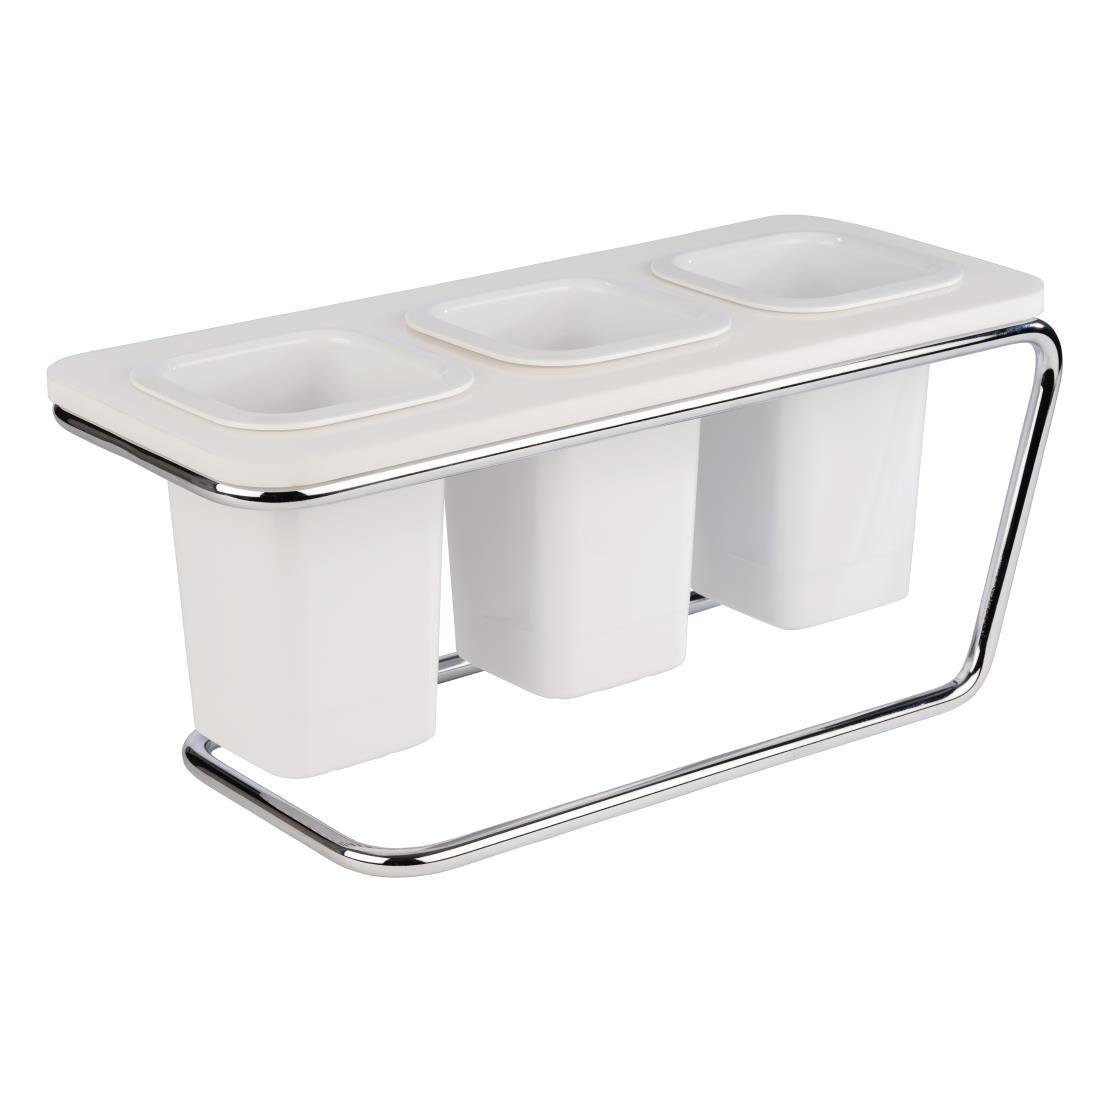 CW190 - APS Triple Cutlery Holder White - Each - CW190